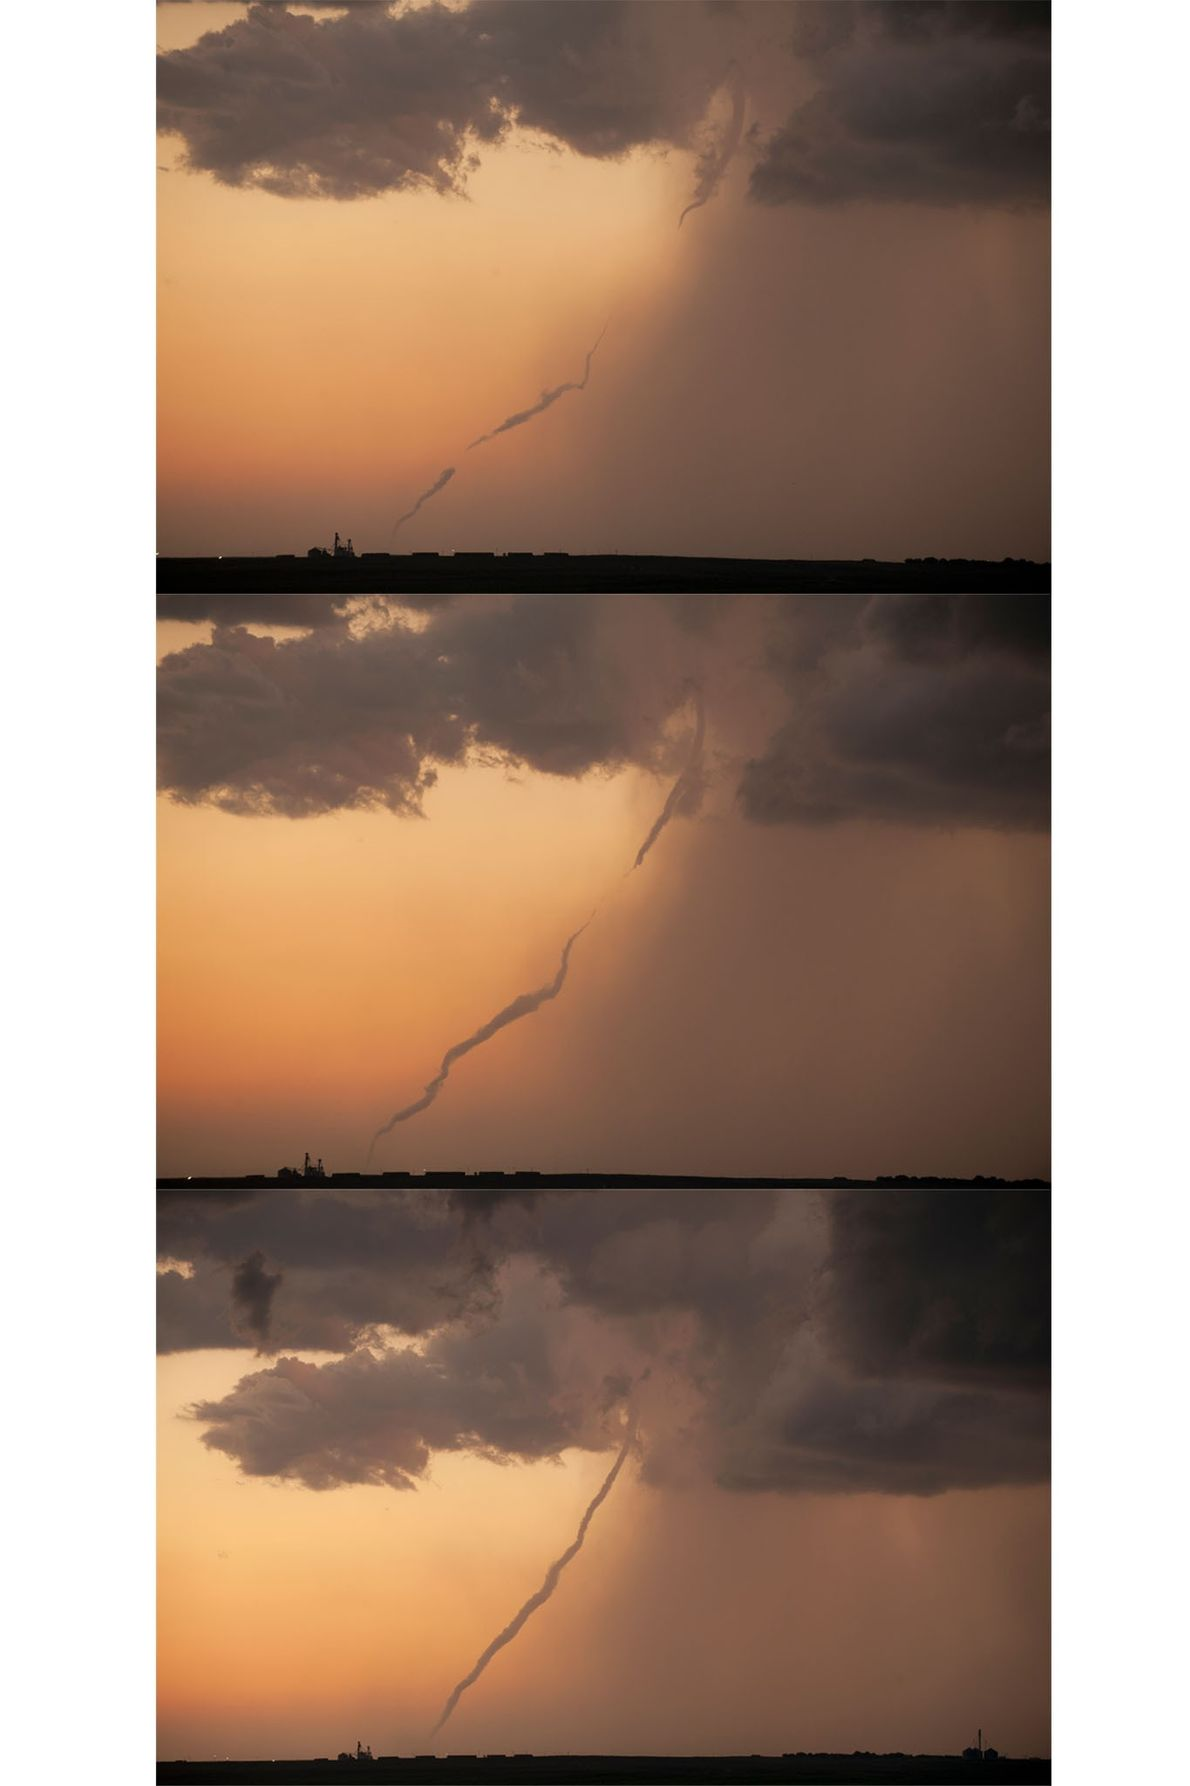 These three photos track the formation of a tornado funnel in Kansas. On the Great Plains, ...